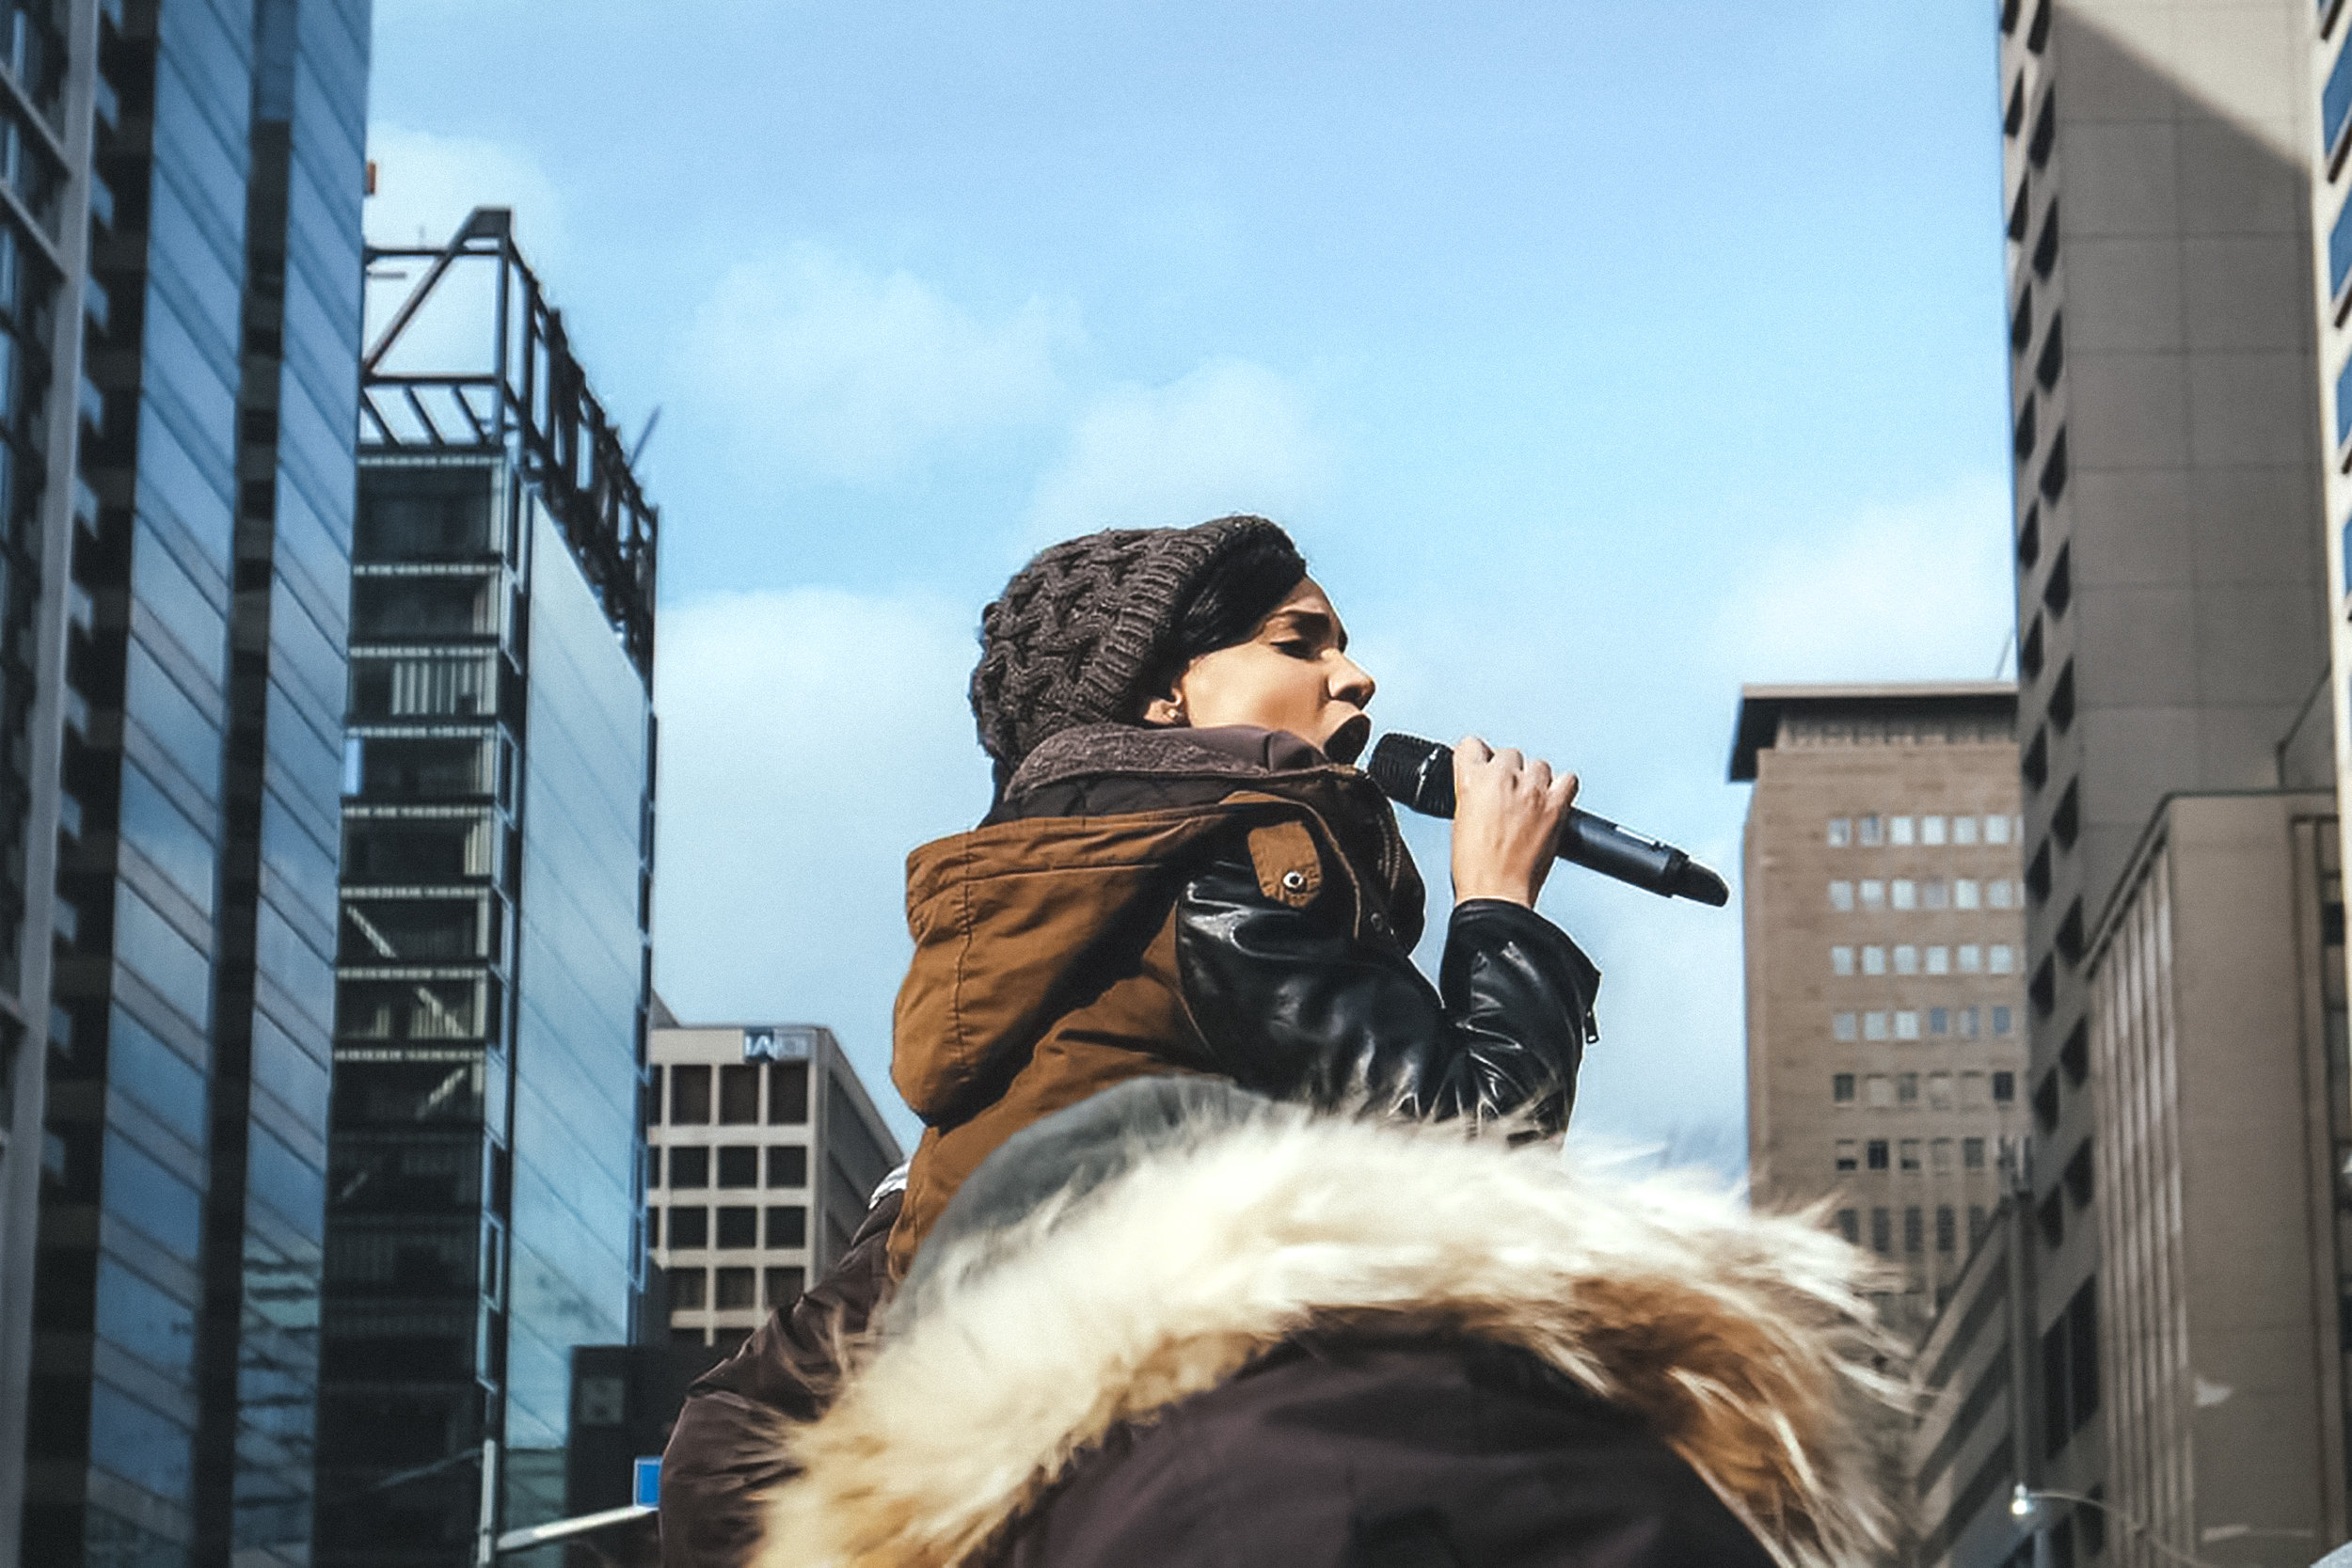 Black Lives Matter Toronto co-founder Yusra Khogali speaking at a rally. Source: blog.to